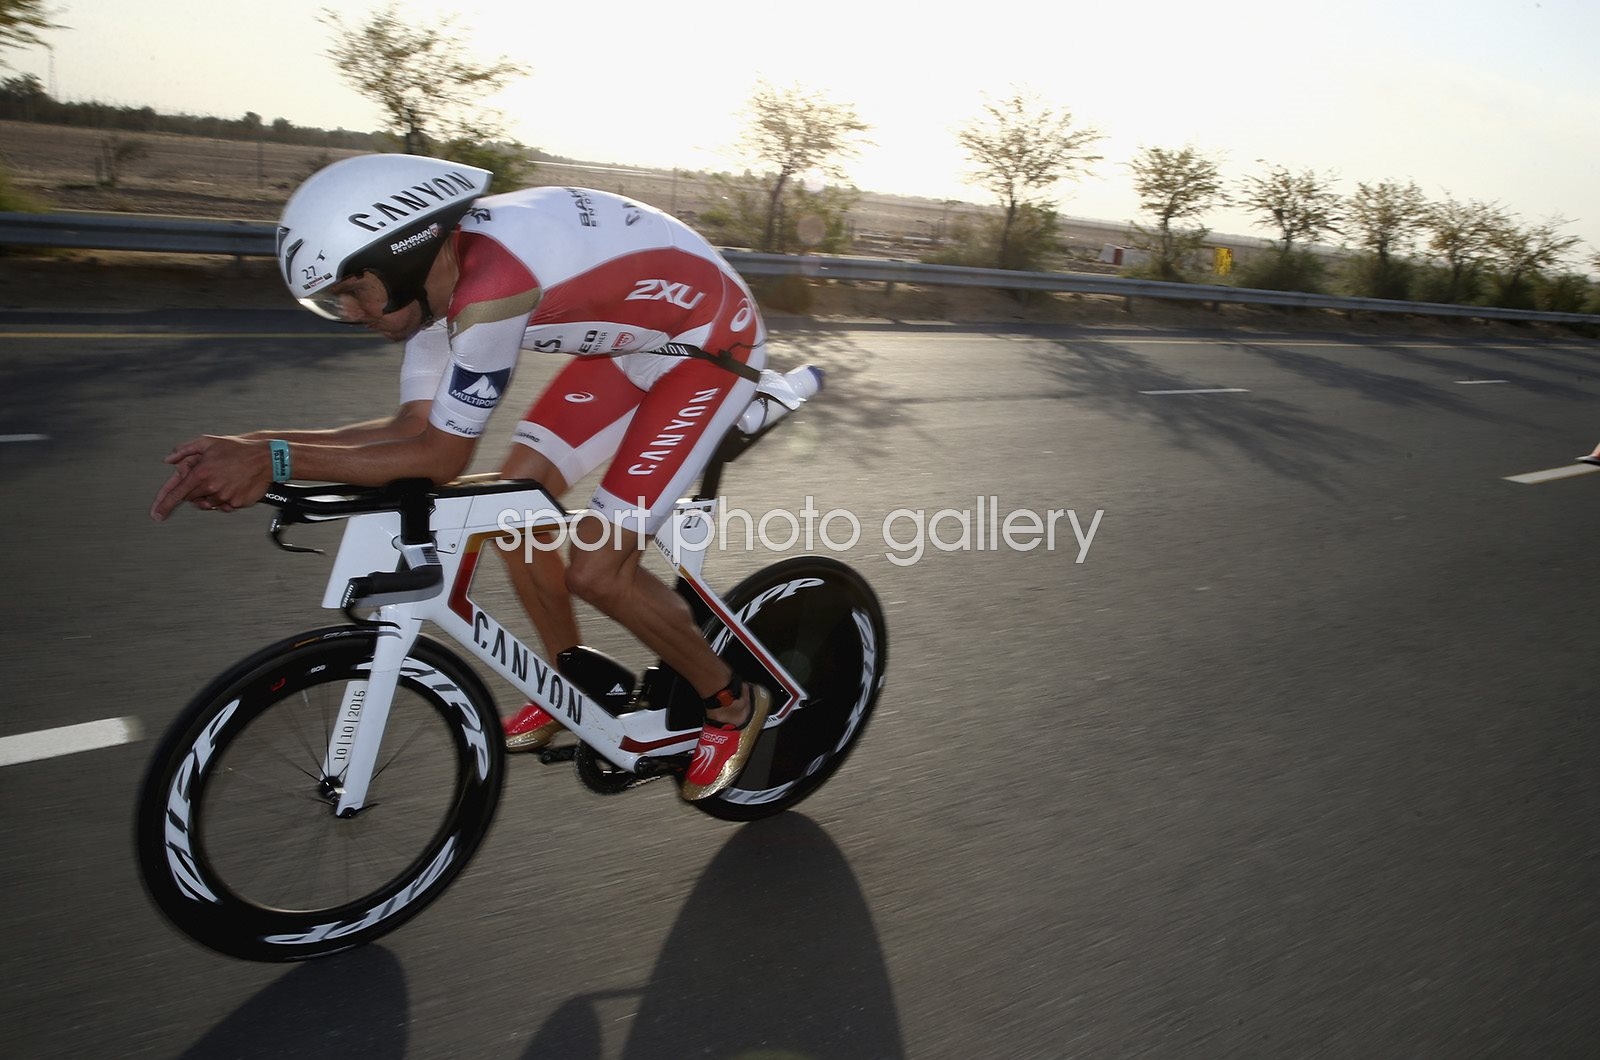 Jan Frodeno Germany wins IRONMAN 70.3 Dubai